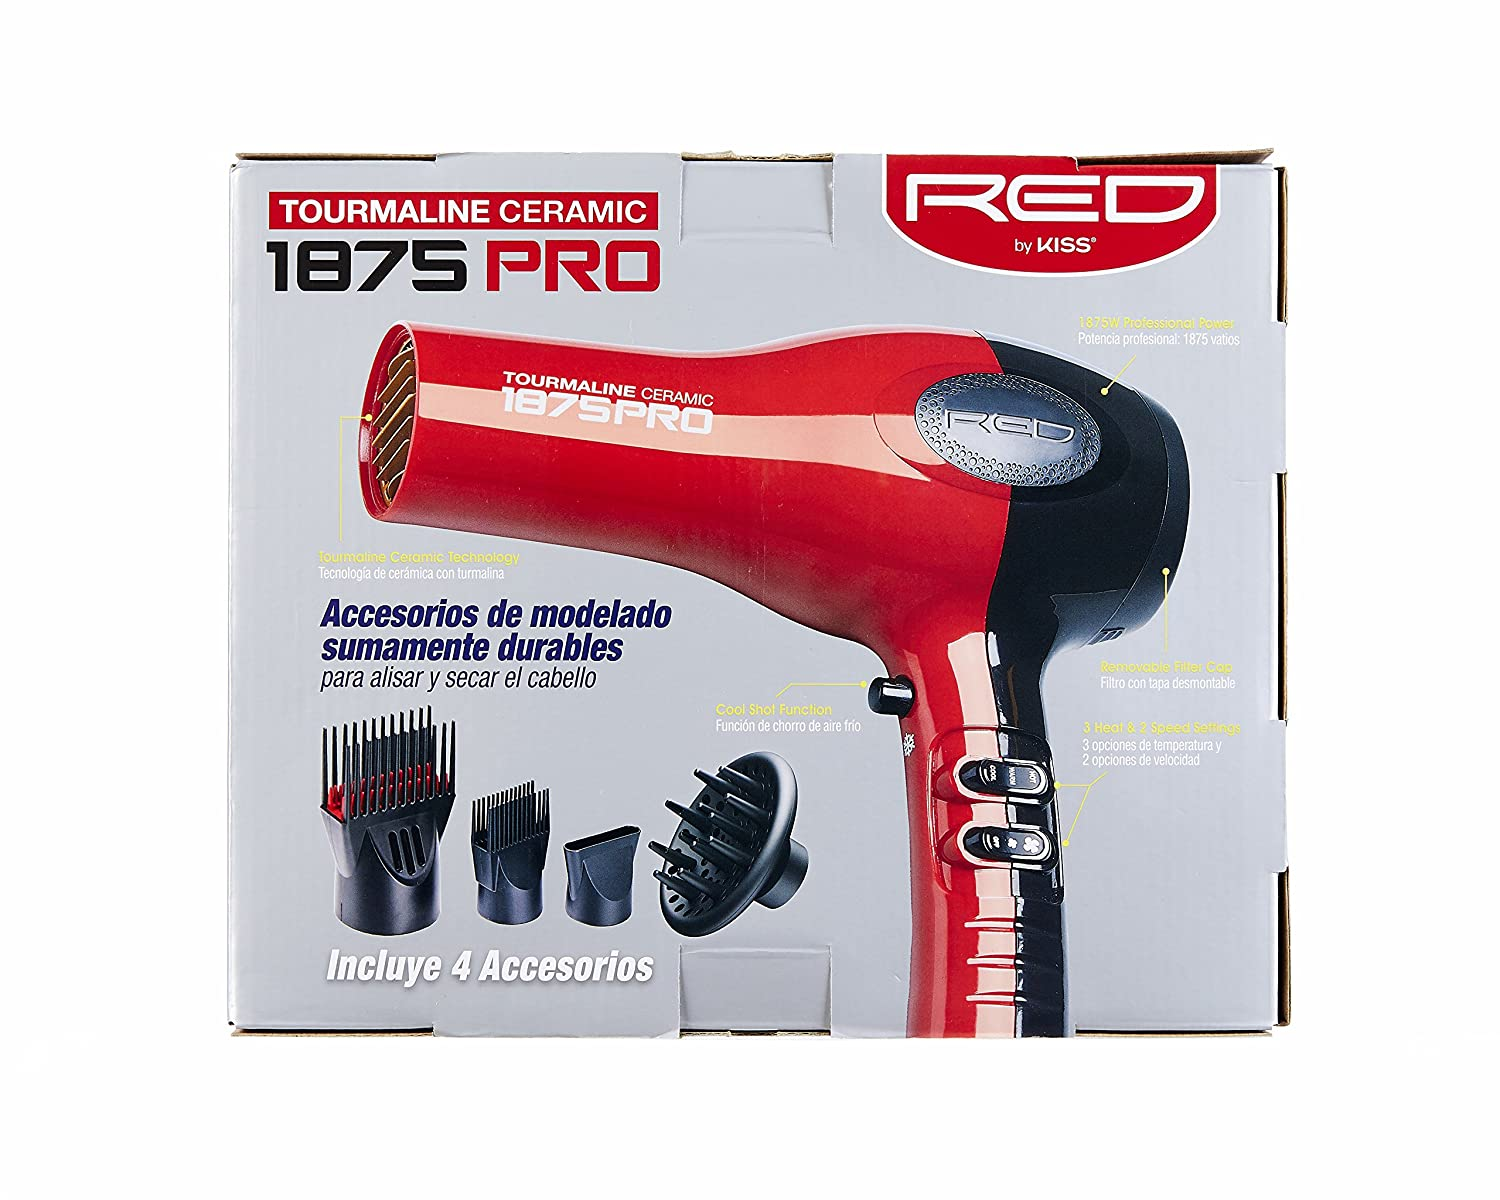 Amazon.com: Red by Kiss 1875 Pro Watt Ceramic Tourmaline Hair Dryer with 4 Additional Styling Attachments: Beauty